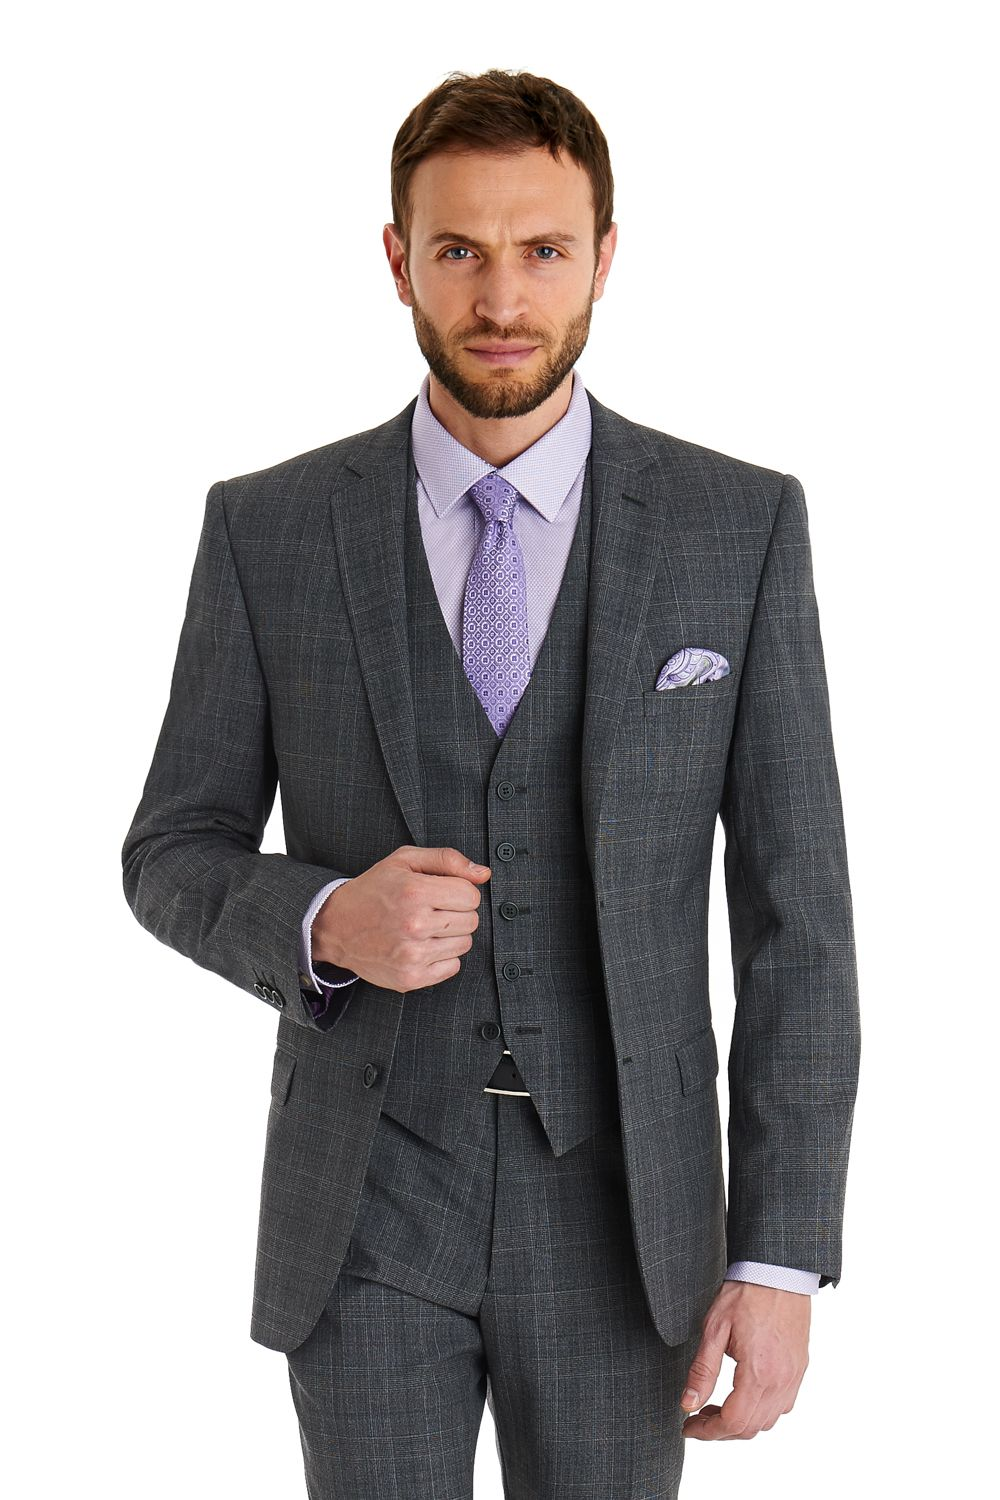 ce59ab68e3273 This Ted Baker slim fit grey check suit is single breasted with a two  button fastening. It has a notch lapel